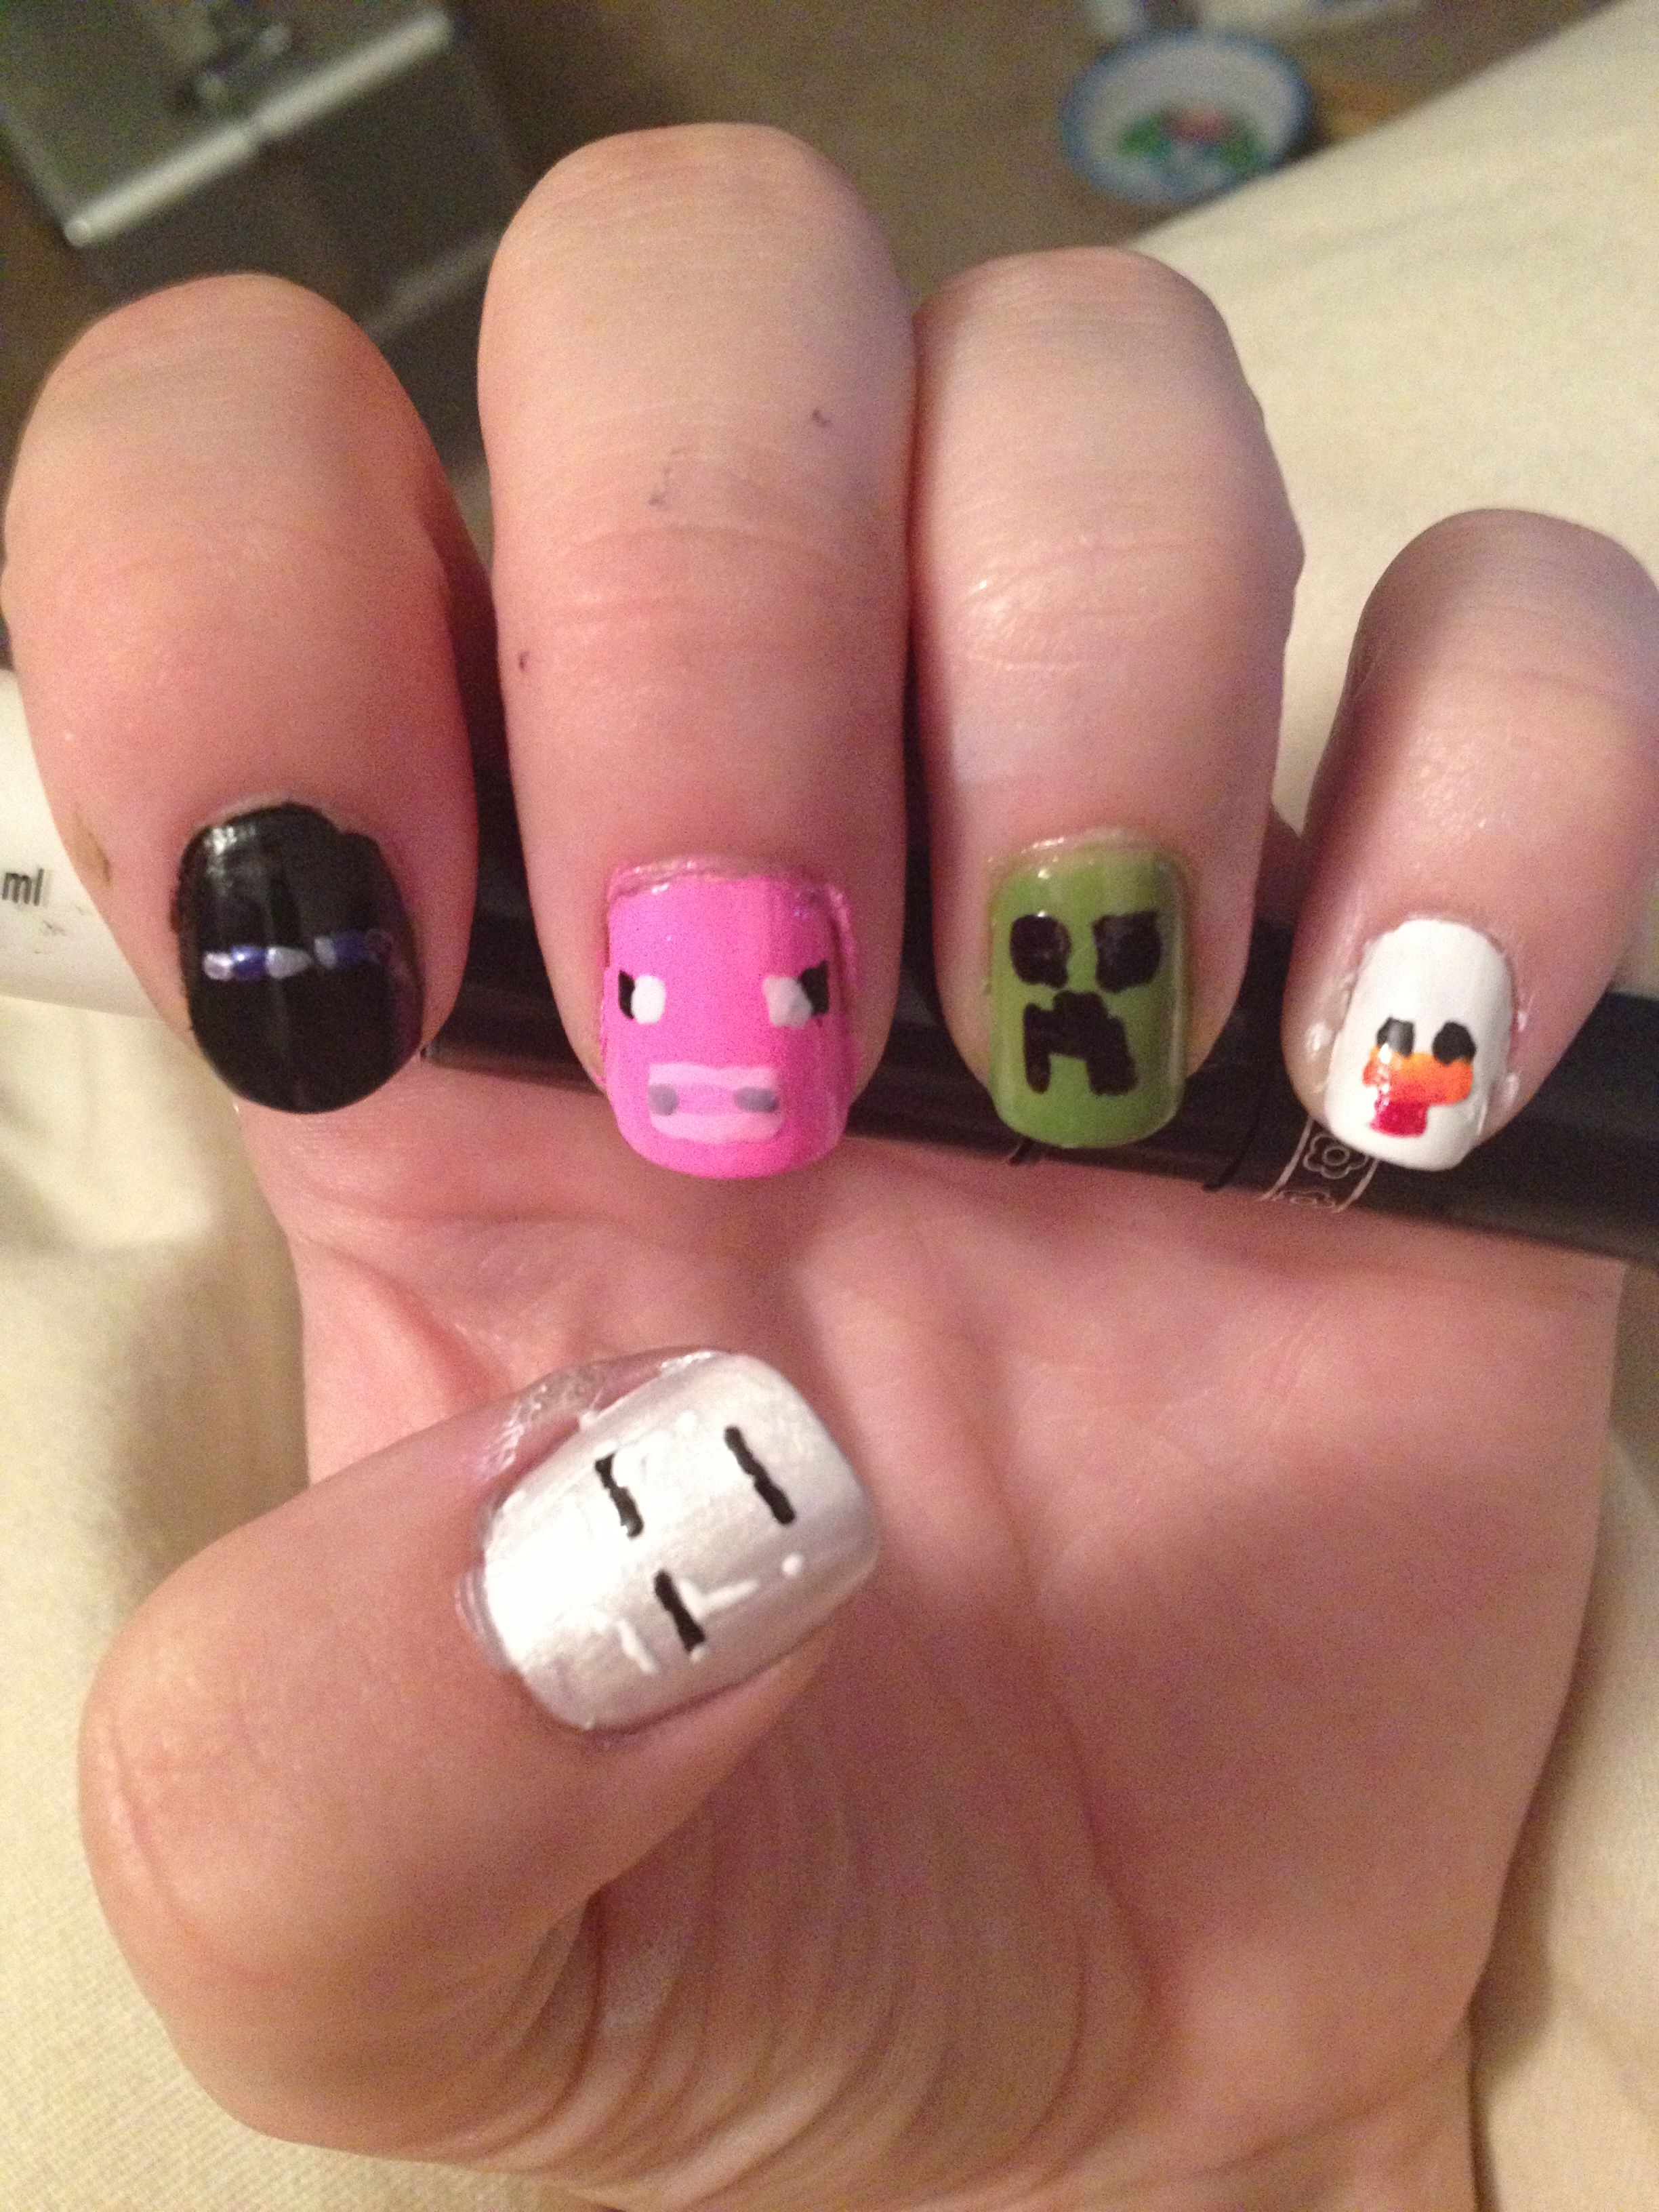 Minecraft nails by using Migi nail art pens. | Nail art | Pinterest ...